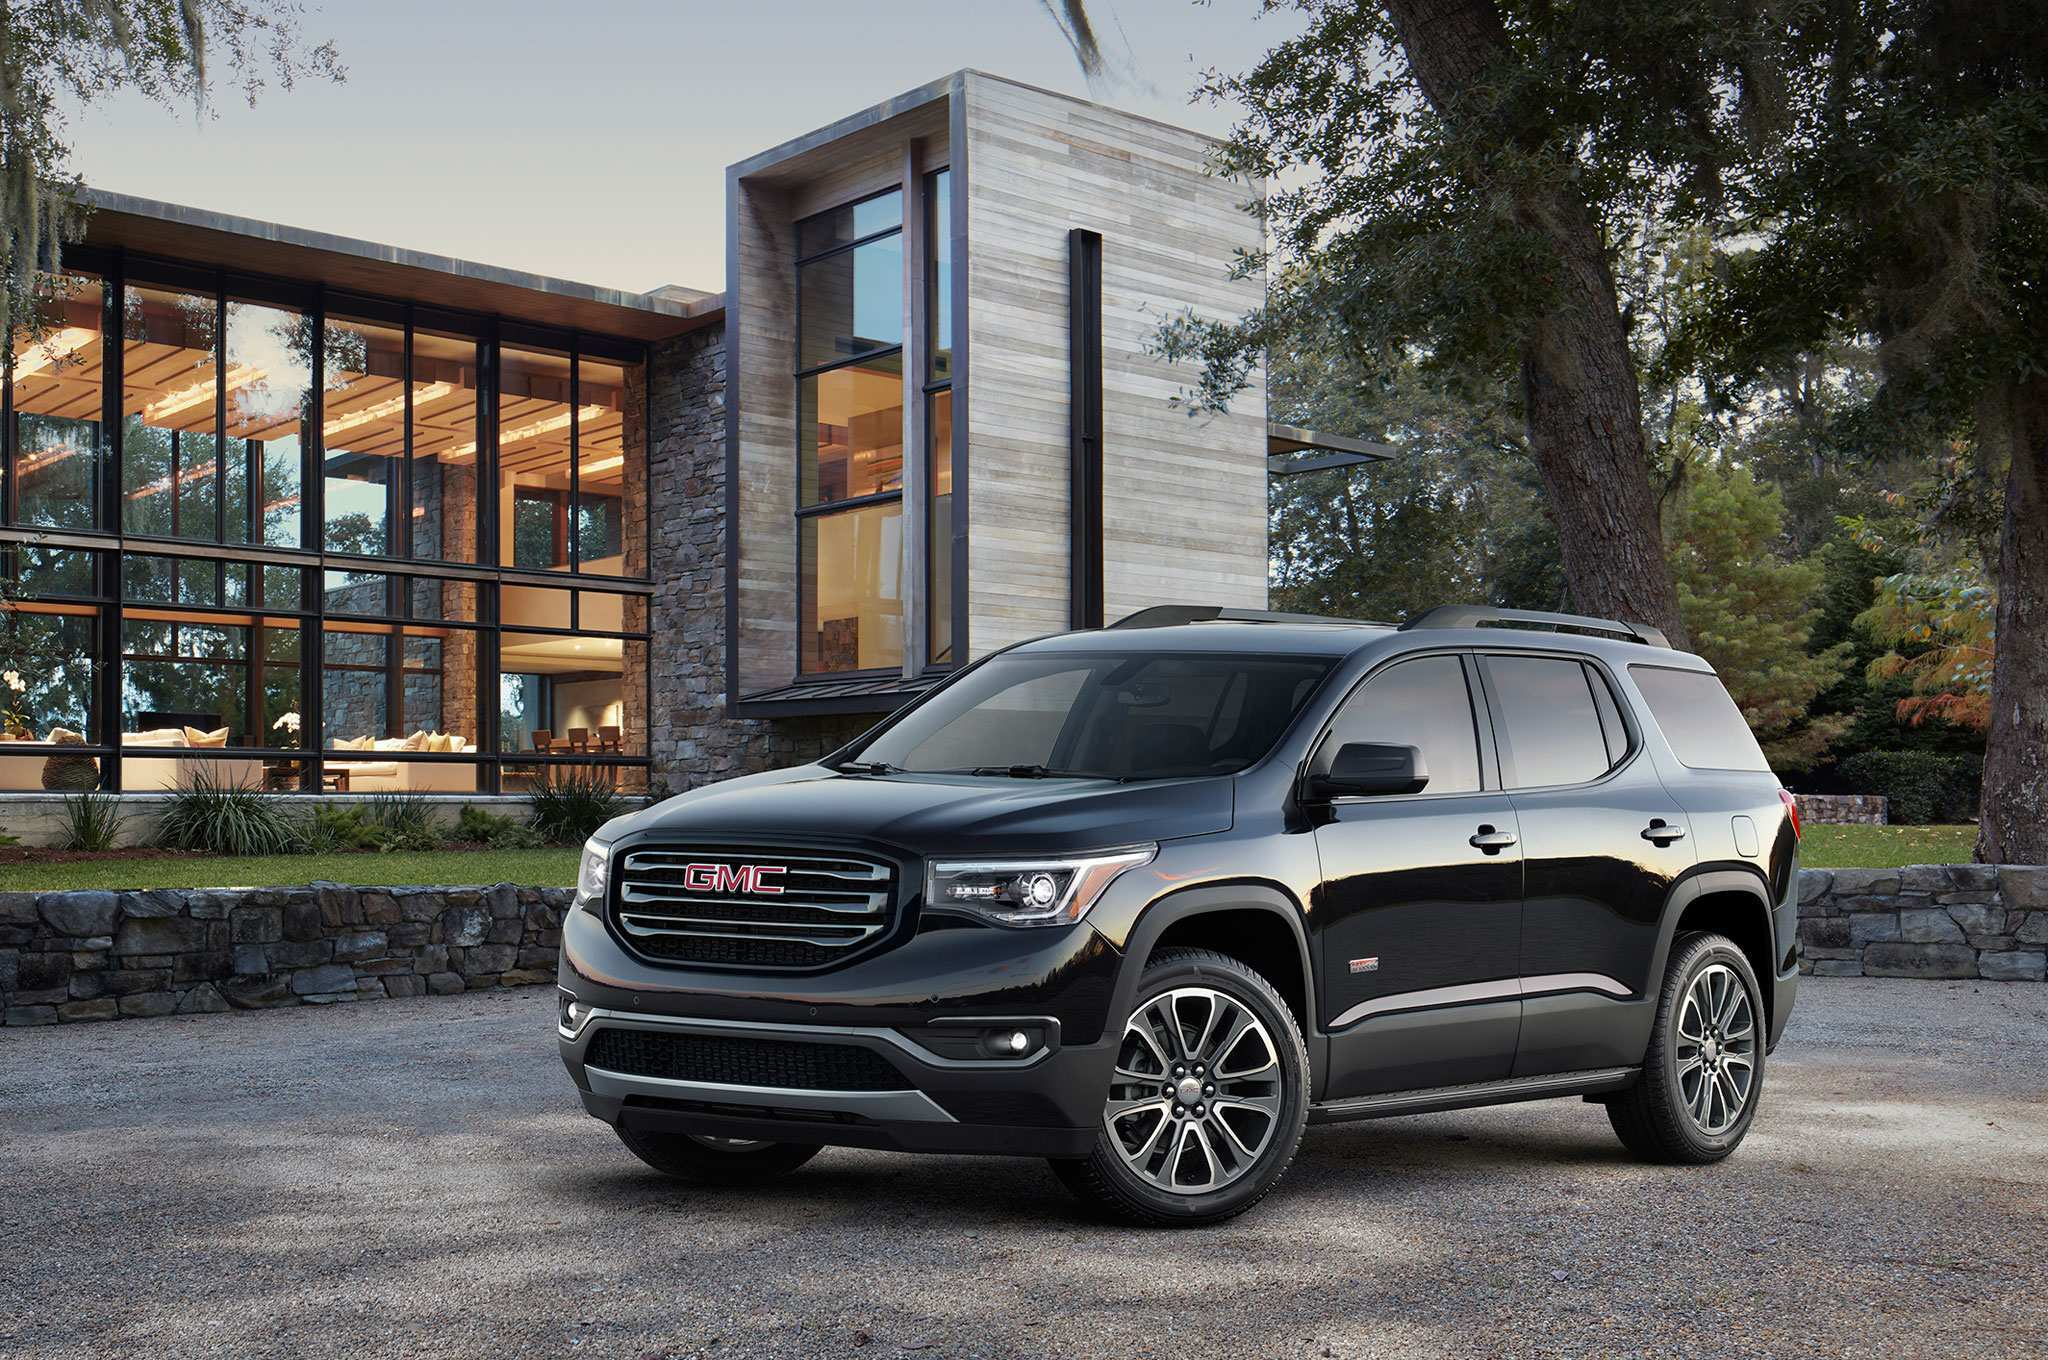 21 Best 2020 GMC Acadia Vs Chevy Traverse Release